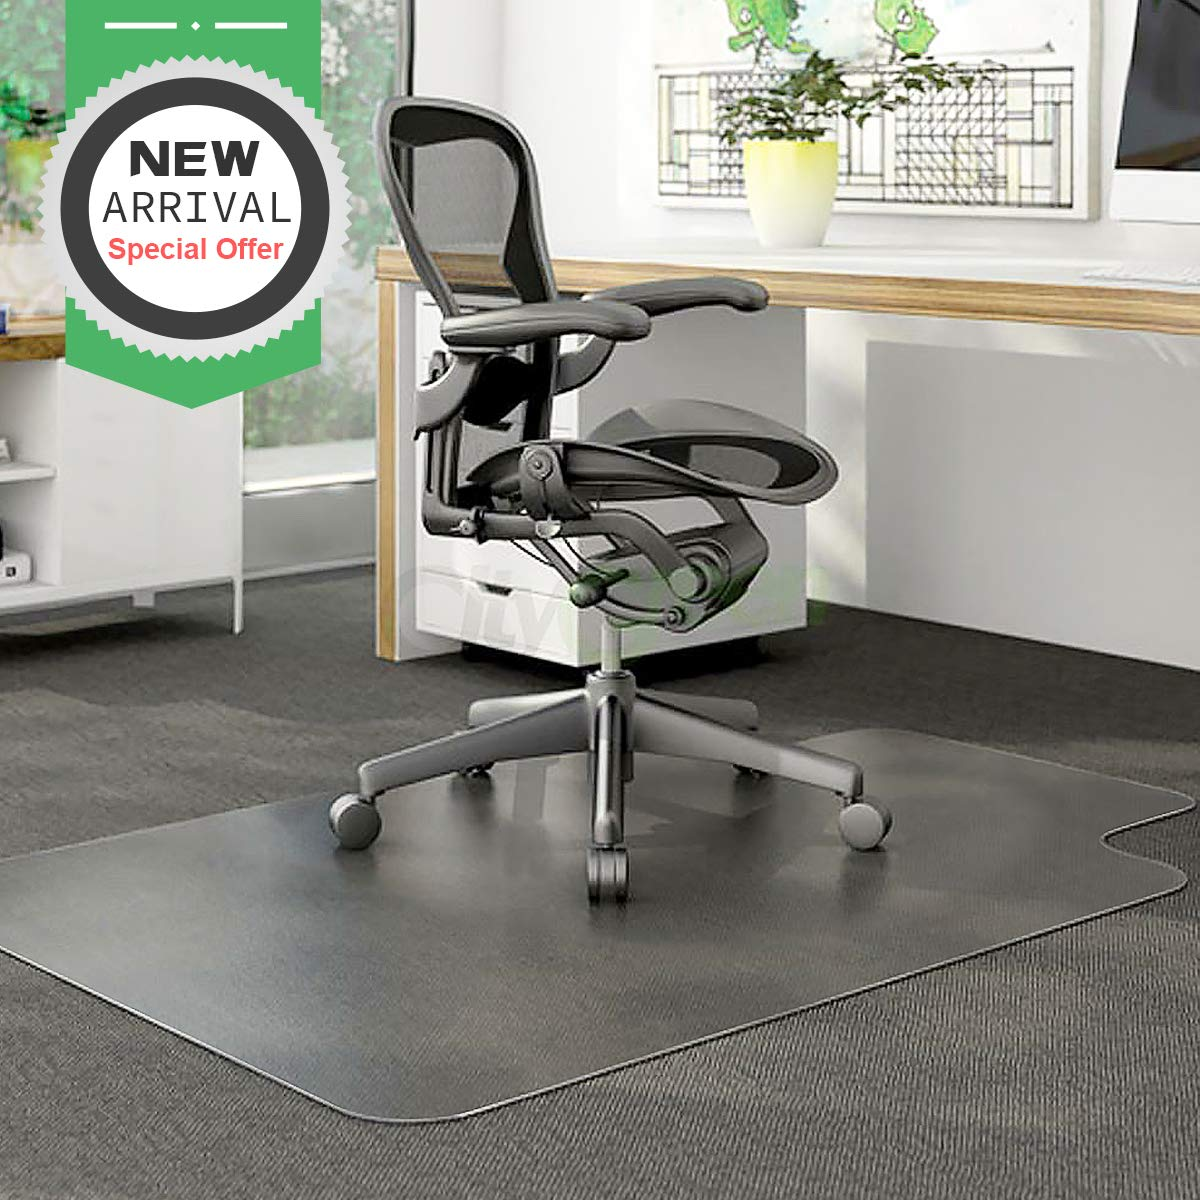 YOUKADA Office Desk Chair Mat for Hard Wood Floor Chair Mat Floor PVC Clear Protection Floor Mat,Chair PVC Plastic Mat, 48'' x 36'',Premium Quality Chair Mat Thick and Sturdy